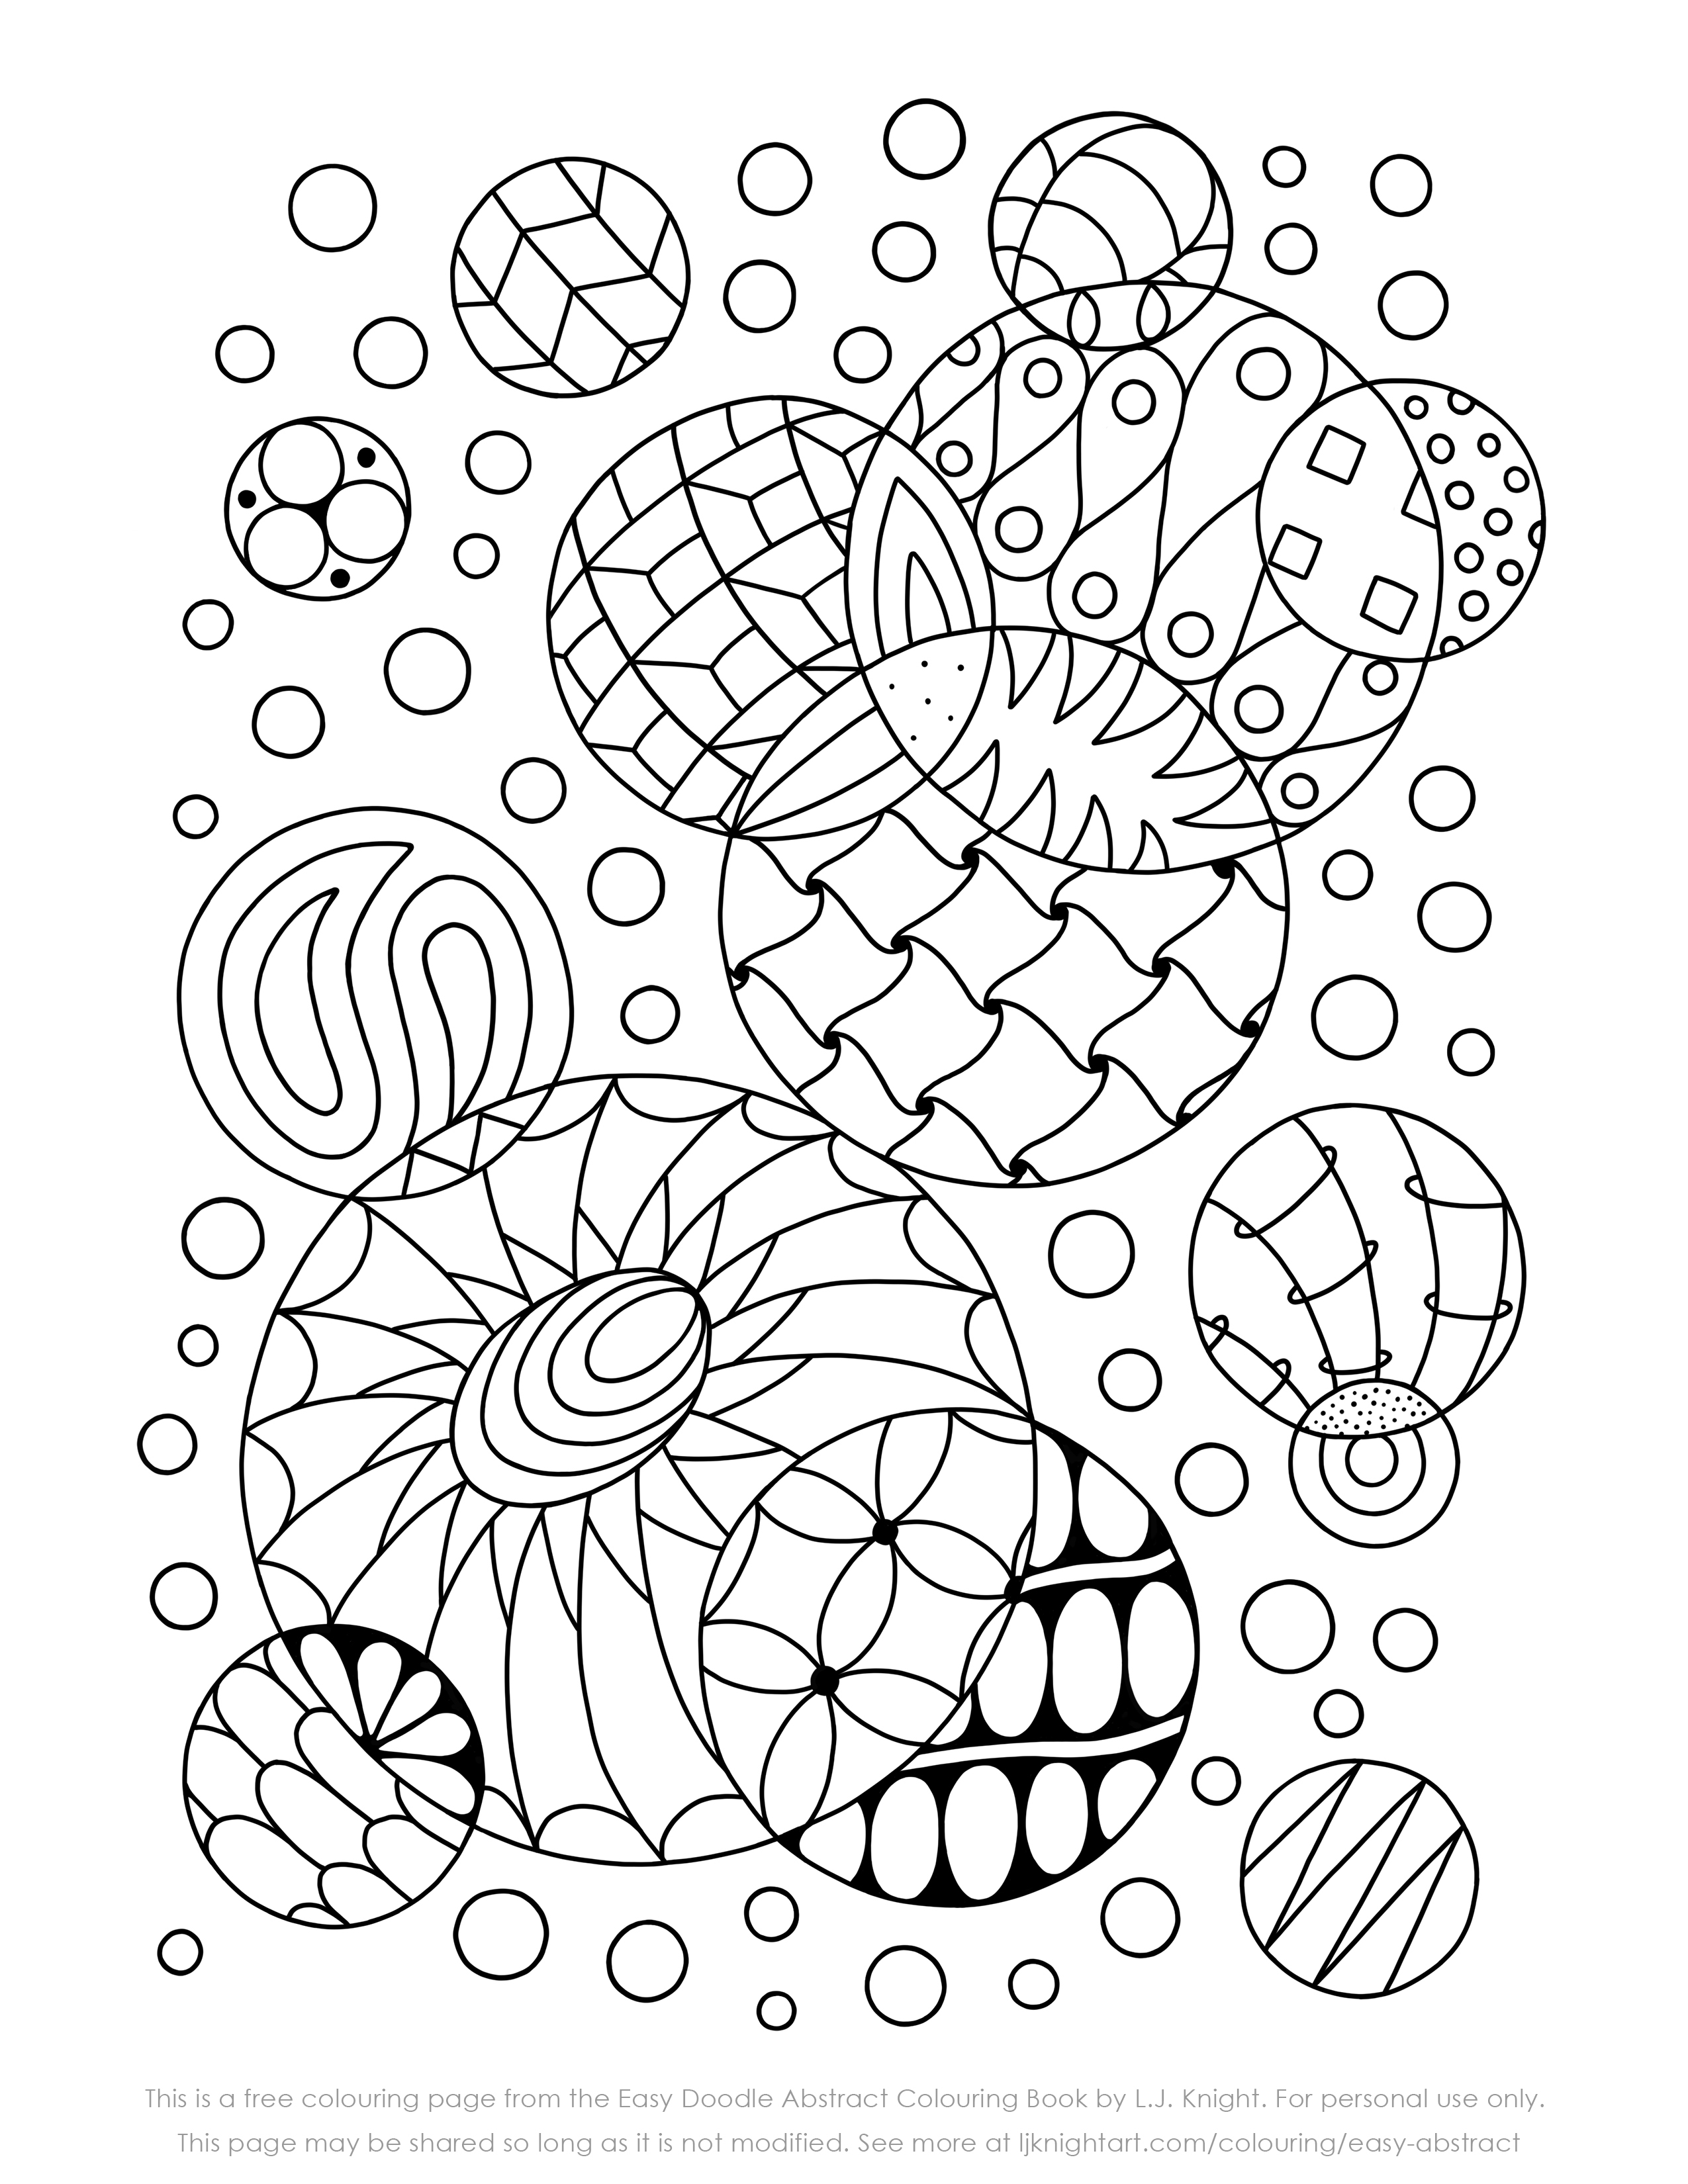 free doodle art to print and color doodle art coloring pages to print free coloring sheets doodle free color and art print to